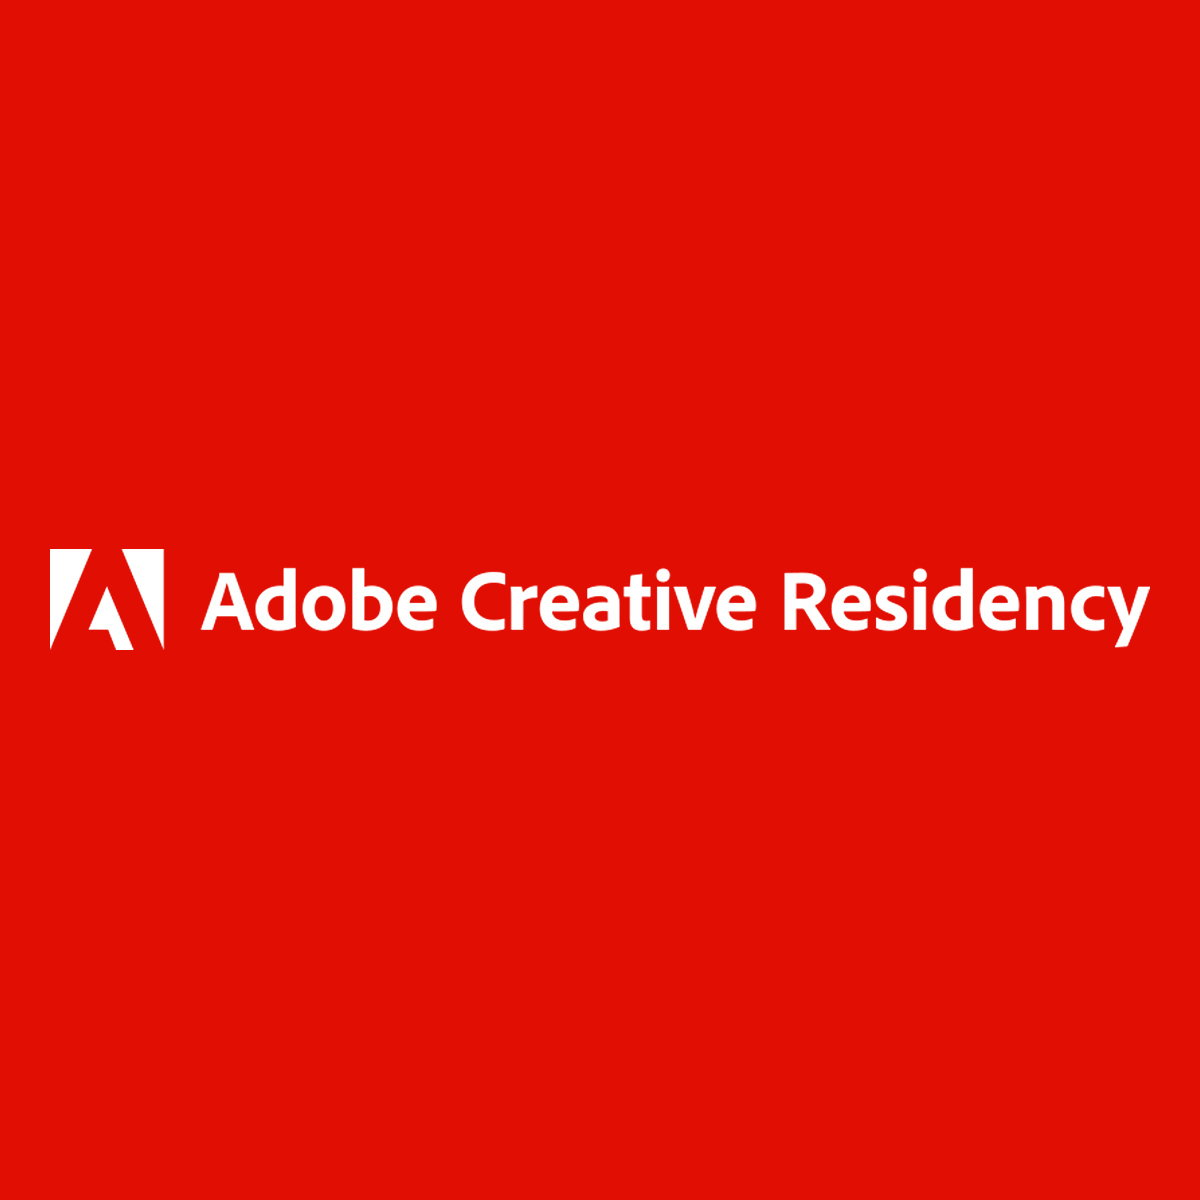 Adobe Creative Residency Applications Open for Next Class of Creatives